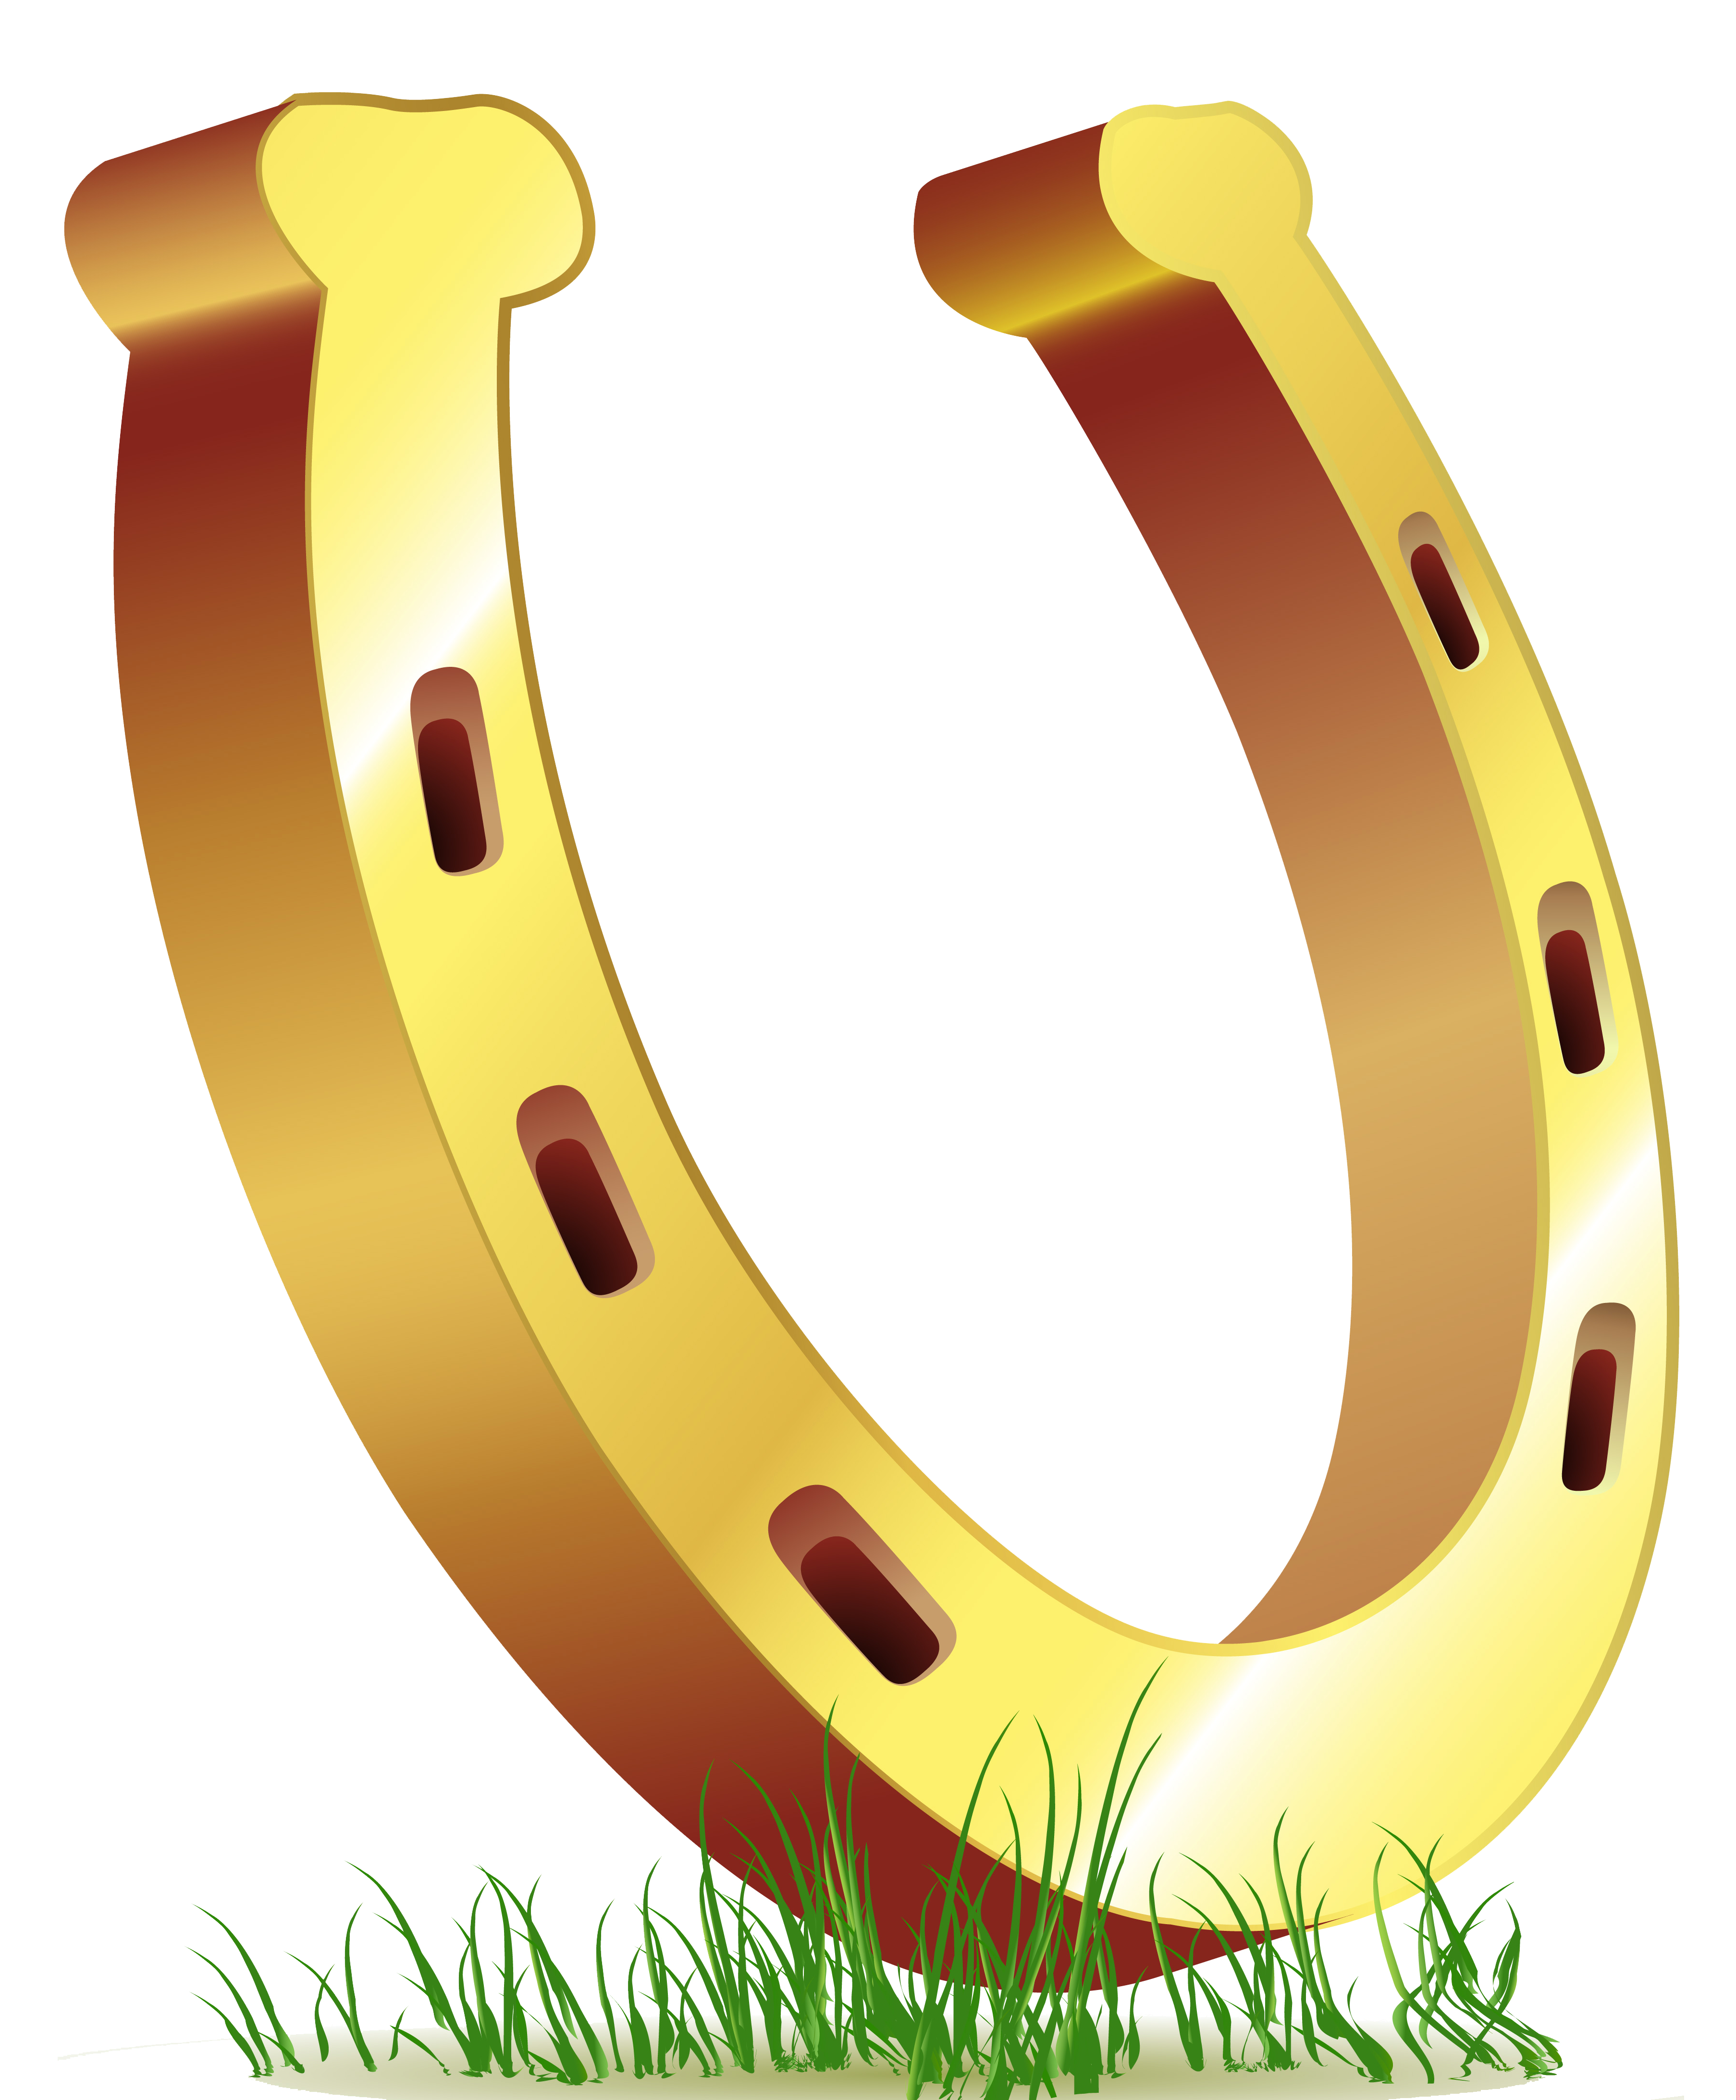 St patricks day png. Horseshoe clipart